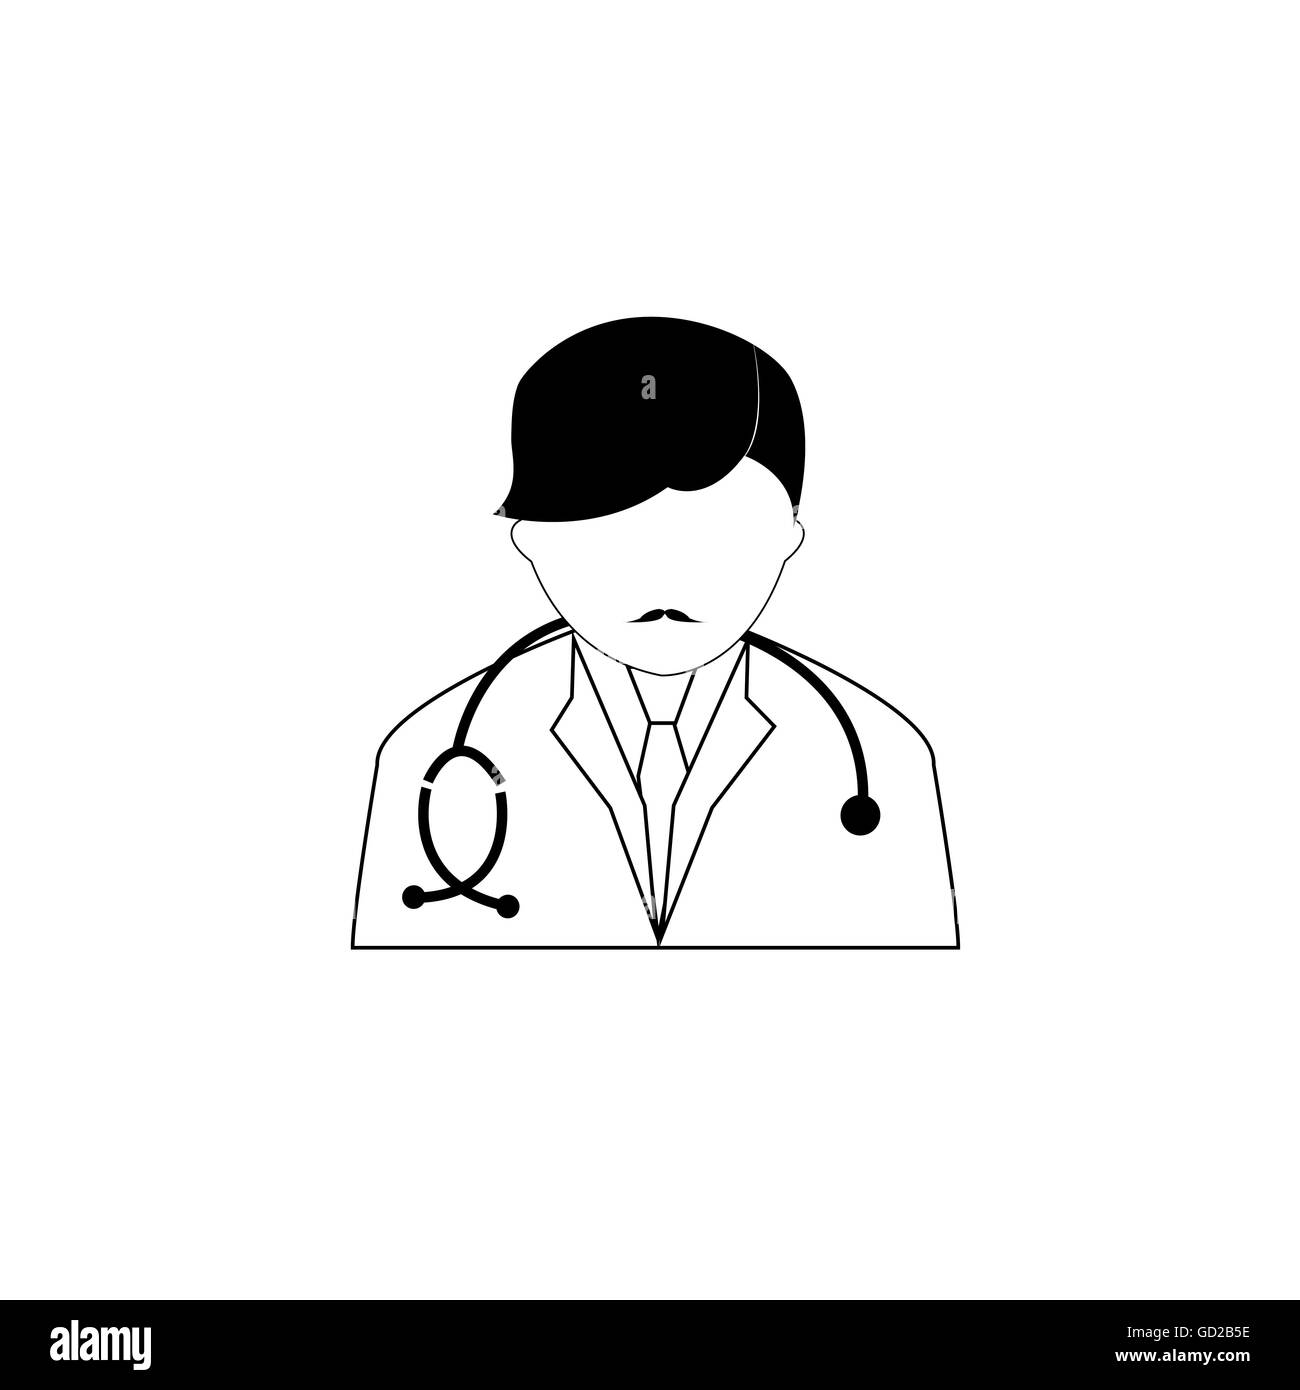 Pictogram of a doctor with his sthethoscope - Stock Image